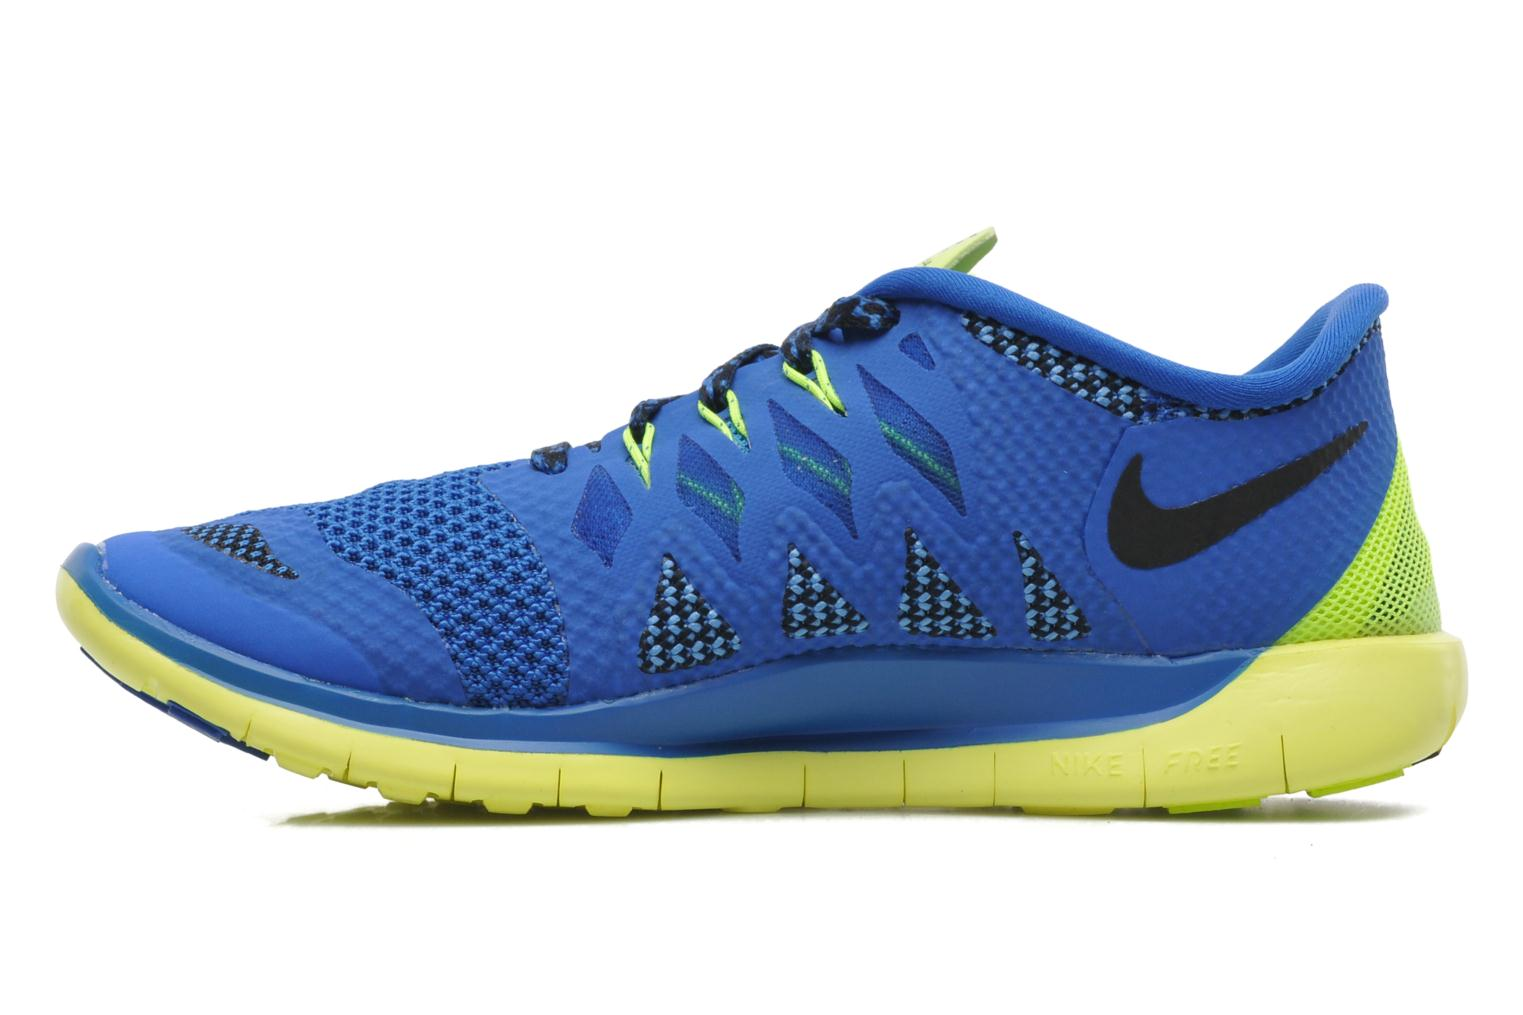 NIKE FREE 5.0 (GS) HYPR CBLT/BLCK-MDNGHT NVY-PHT